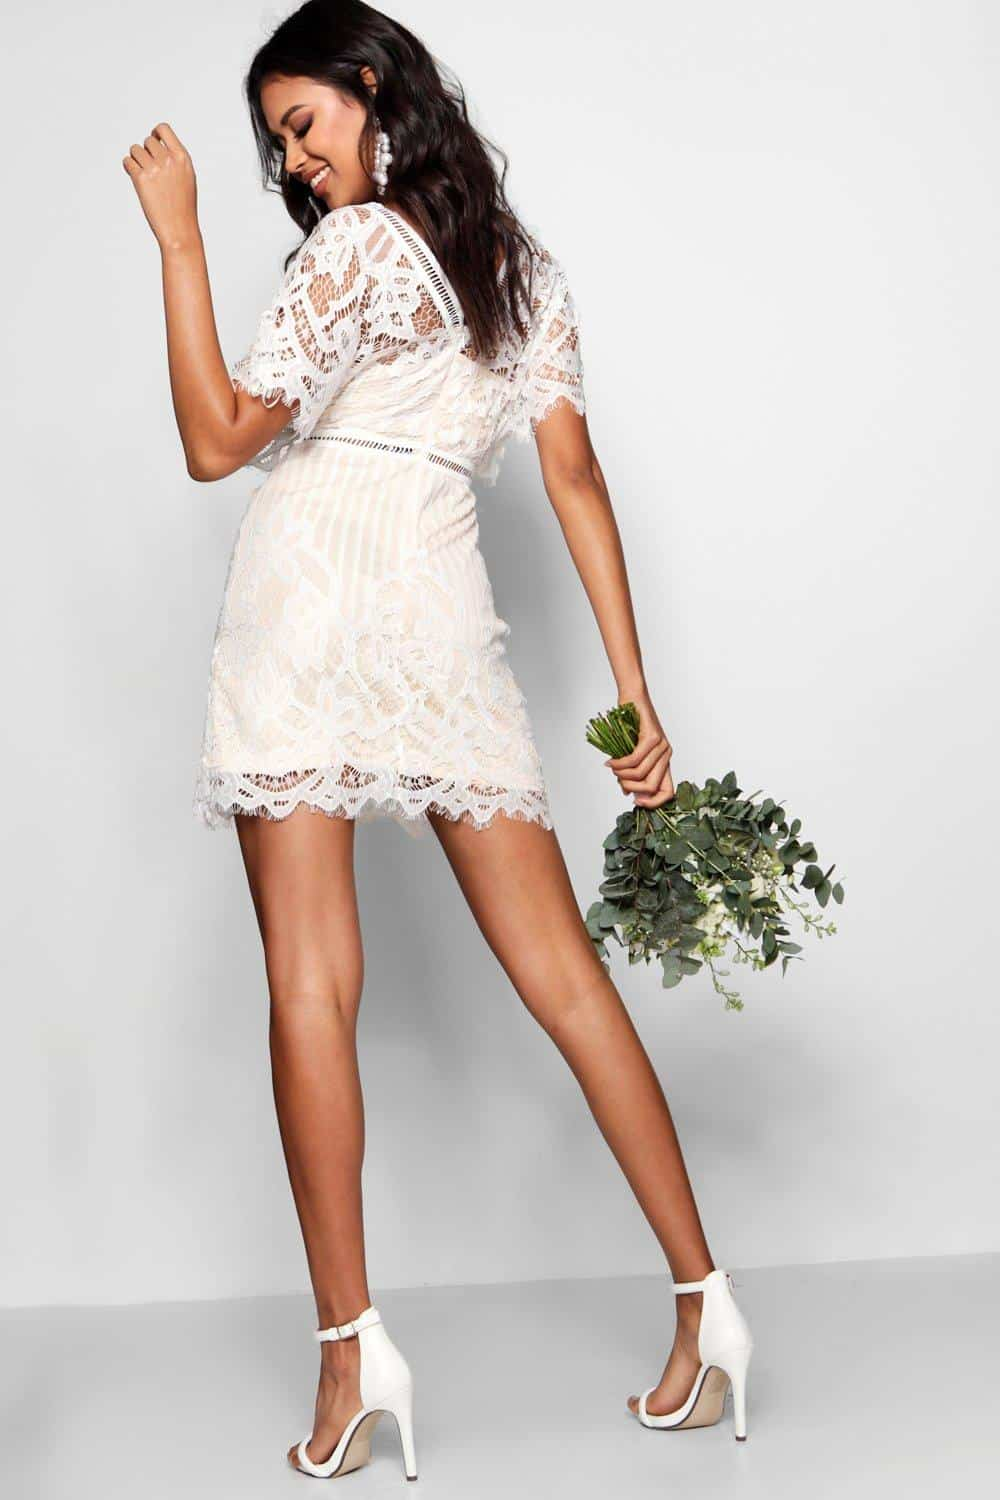 Bridal Shower Dress Bohemian Boho All Over Lace Bodycon